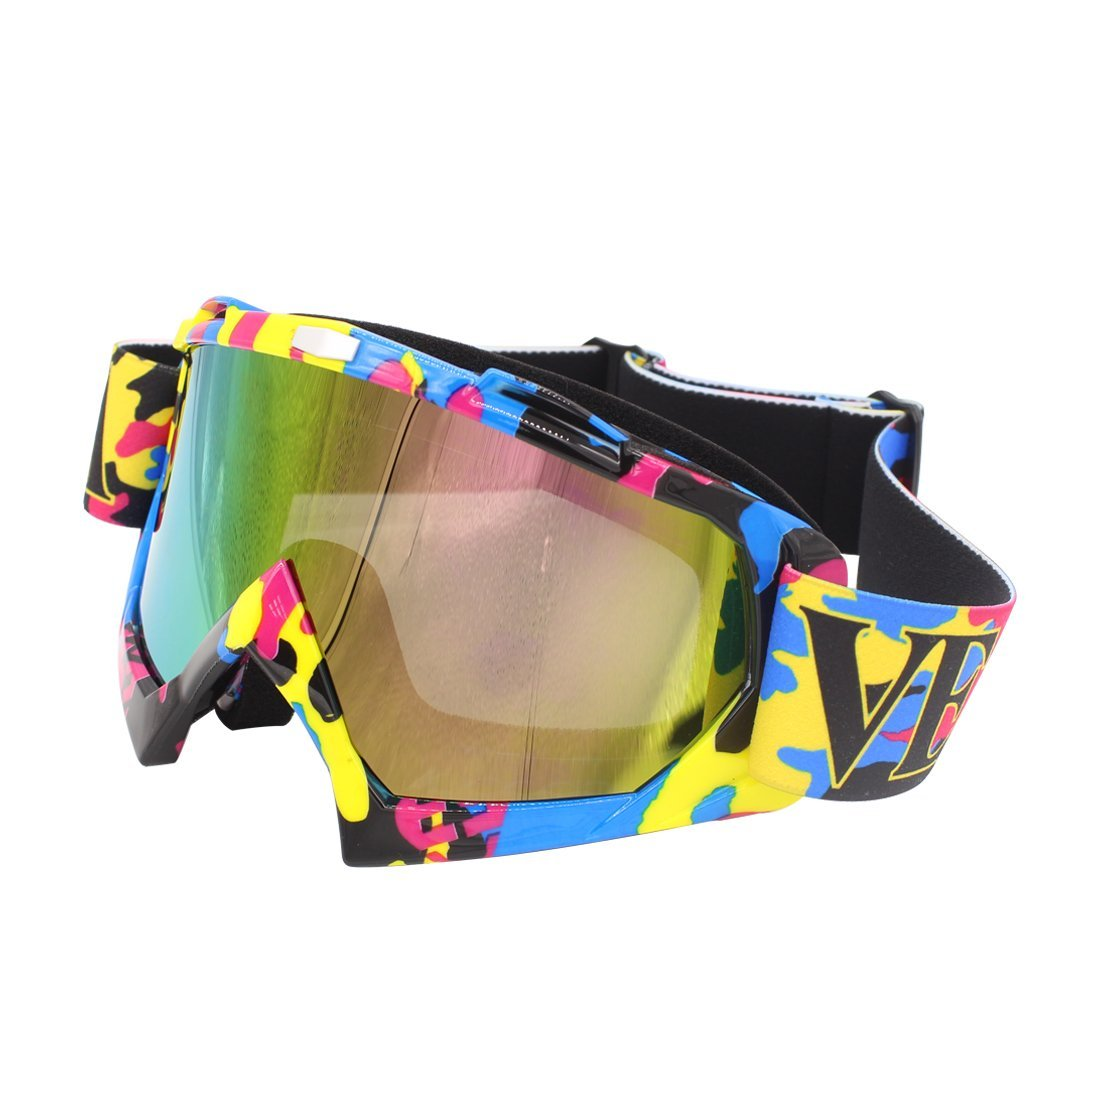 e3cead08c5 Get Quotations · Motorcycle Goggles - ATV Riding Goggles Glasses